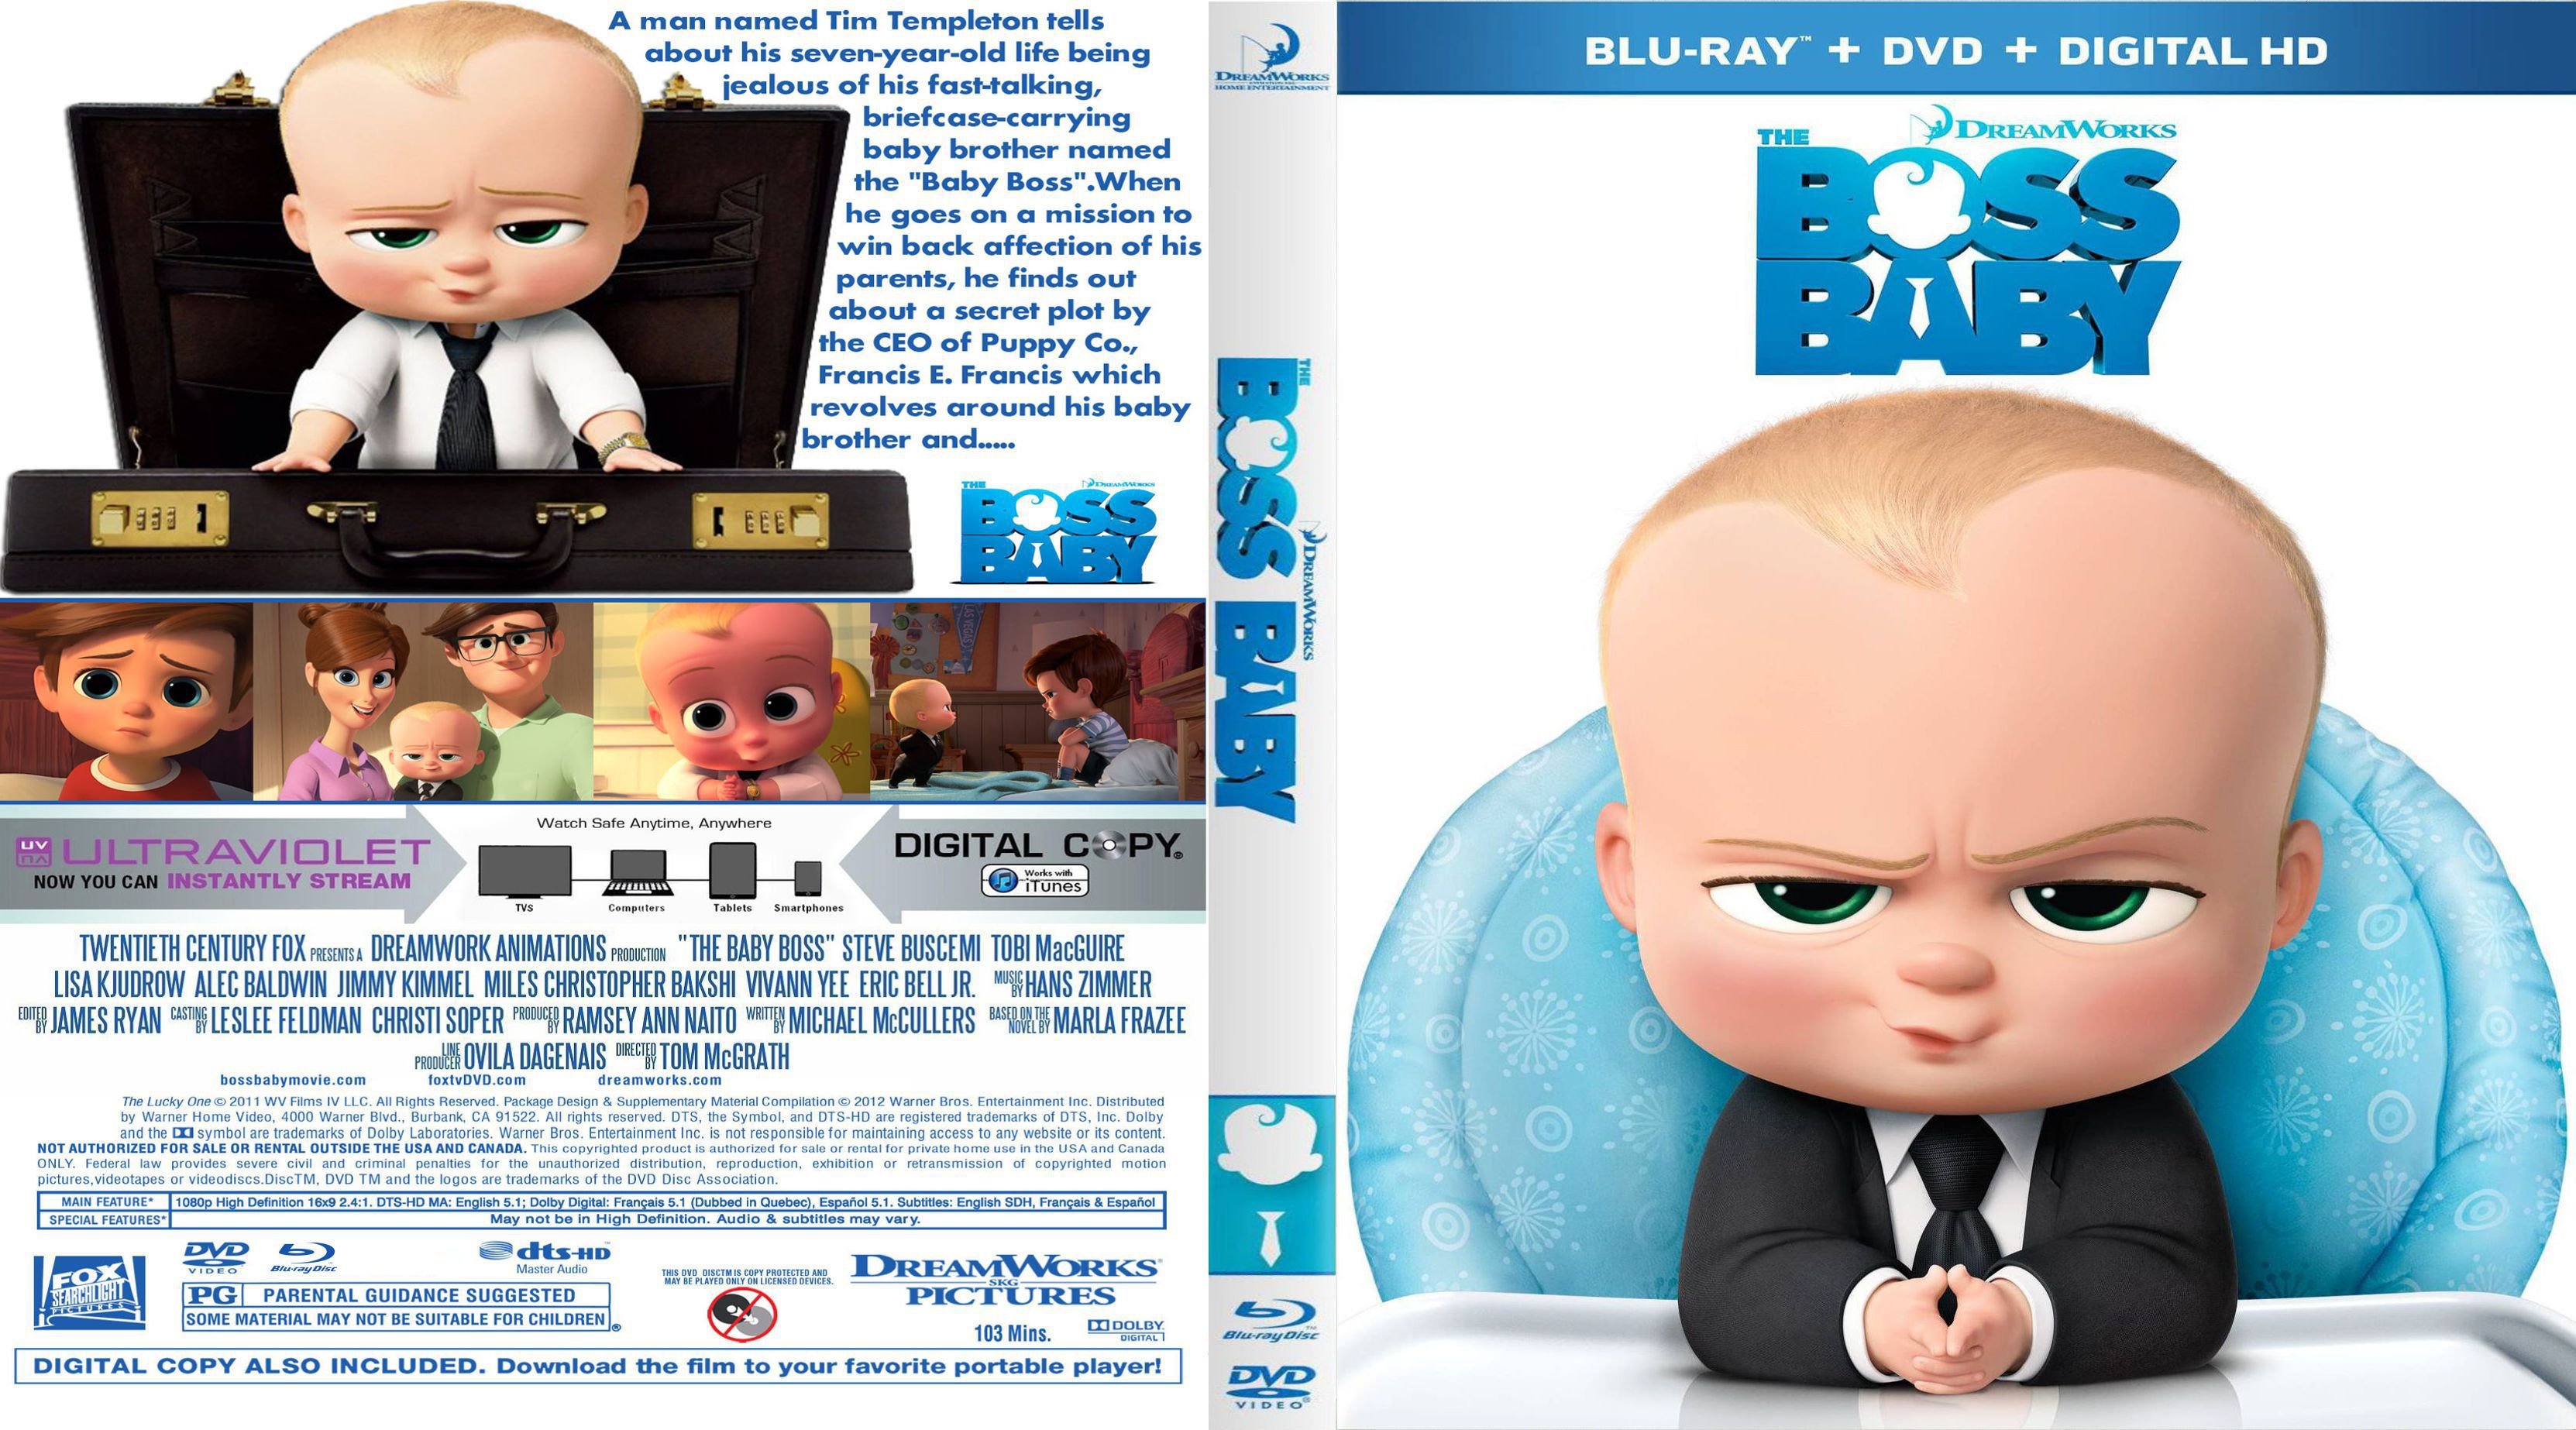 The Boss Baby 2017 R1 Custom 3d Blu Ray Covers Dvd Covers And Labels